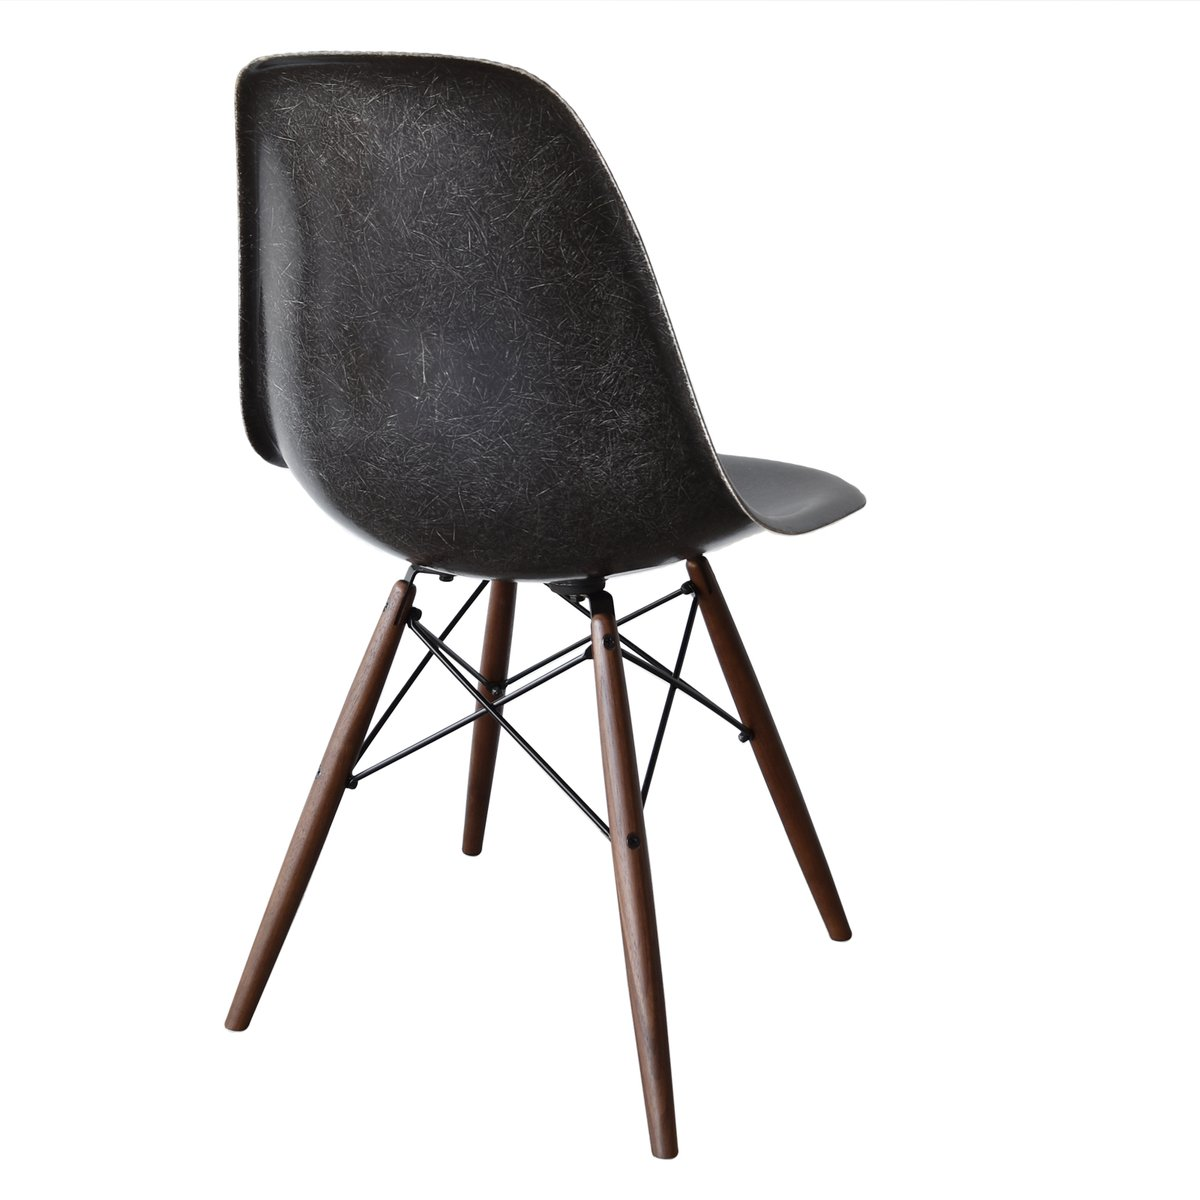 black dsw chair by charles and ray eames for herman miller. Black Bedroom Furniture Sets. Home Design Ideas